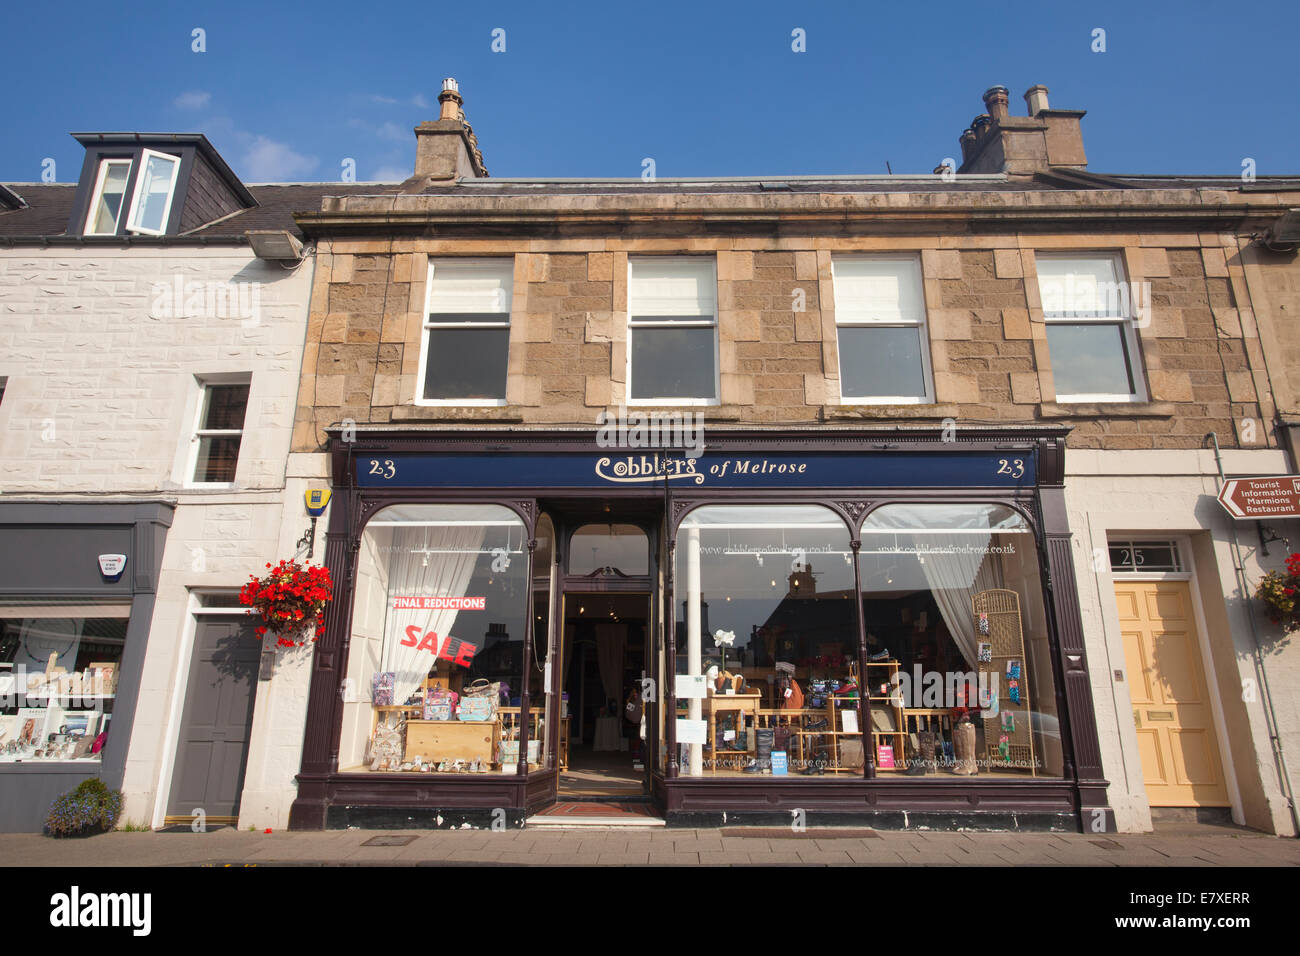 Shops on Market Square, Melrose pretty market town in the Scottish Borders, Roxburghshire, Scotland, United Kingdom - Stock Image